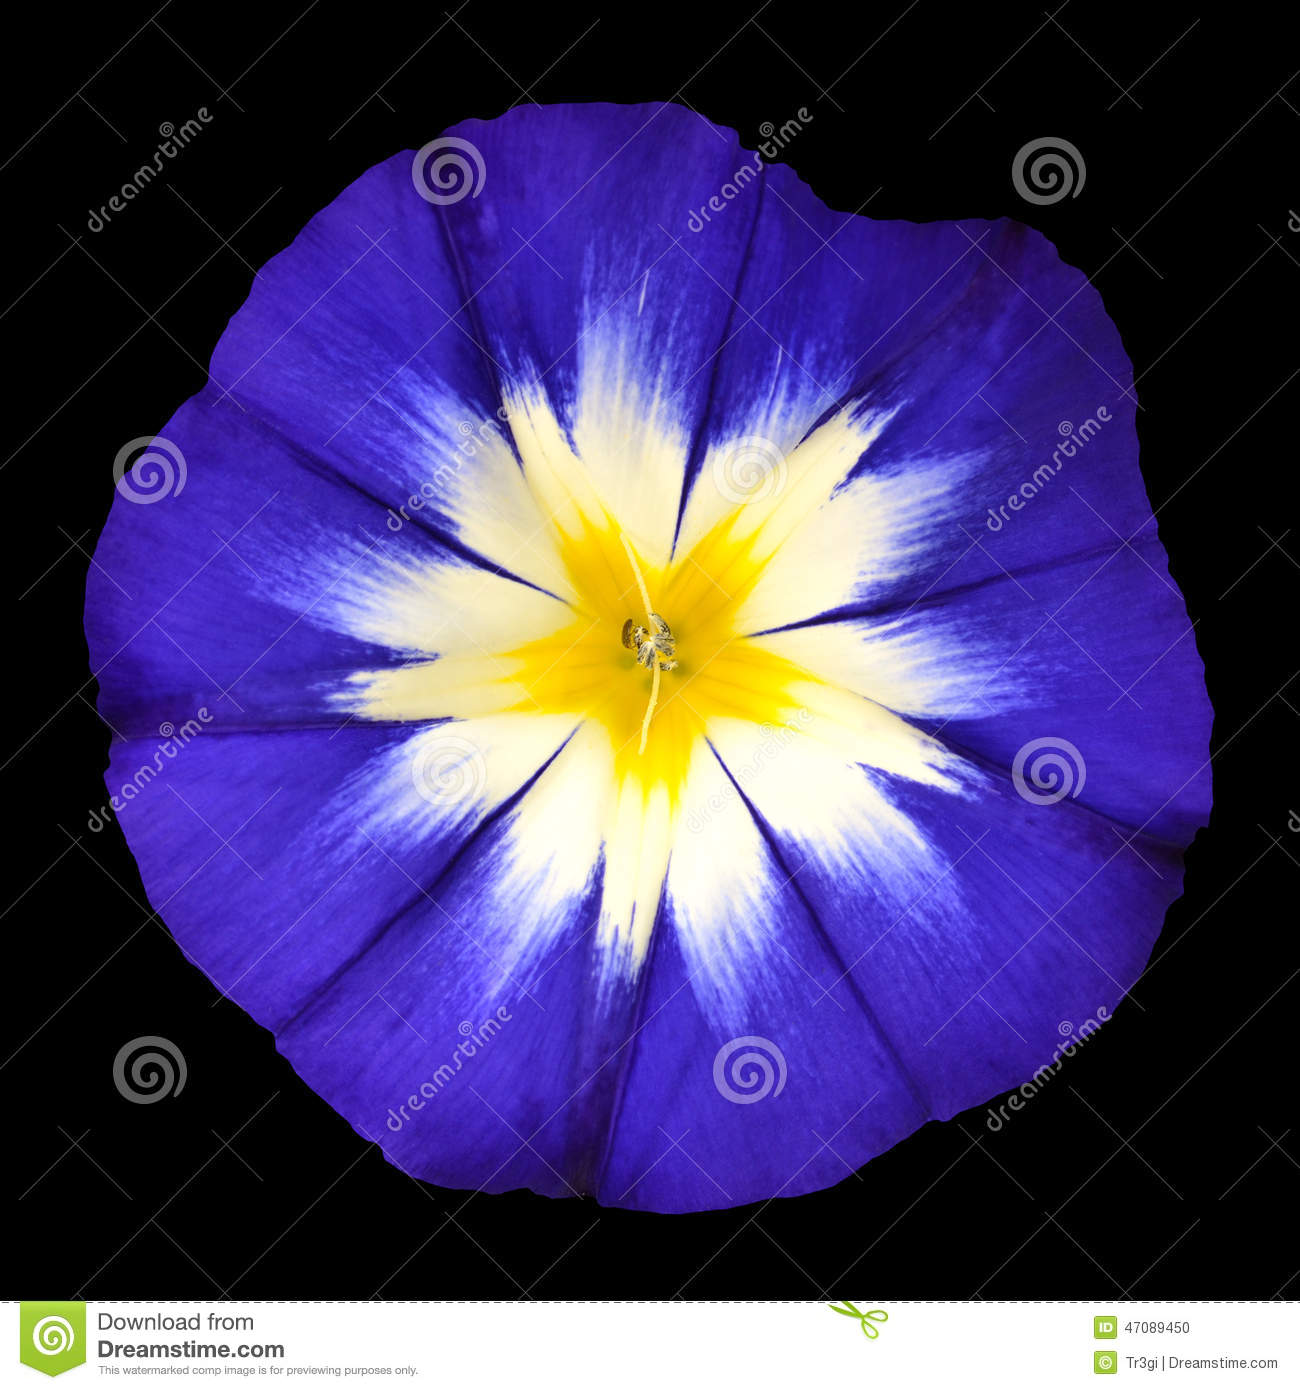 isolated purple flower with yellow center stock photo  image, Beautiful flower